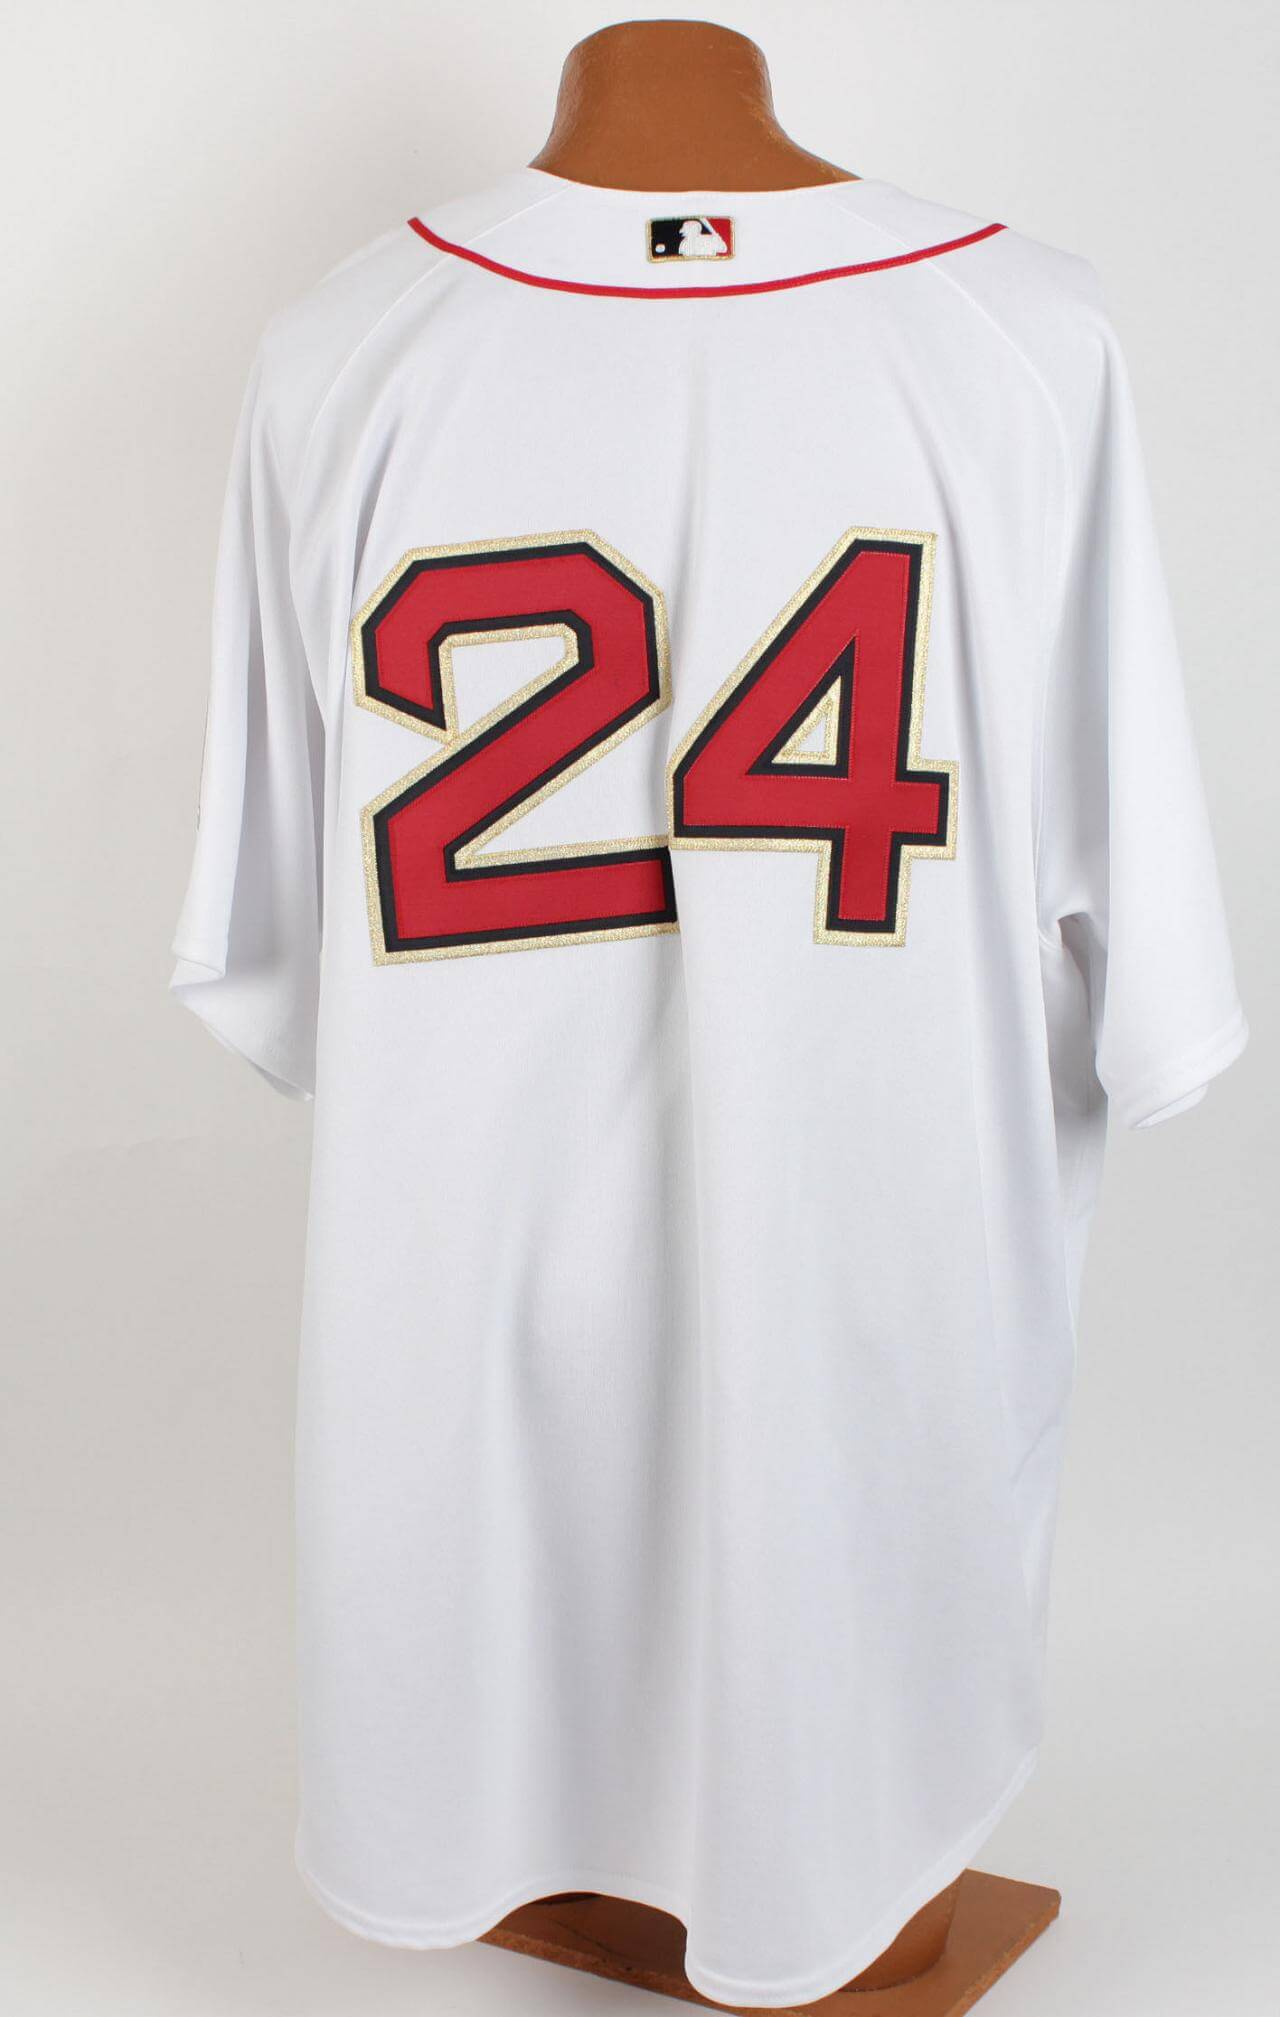 a33a17fed 2005 Opening Day Boston Red Sox – Manny Ramirez Game-Issued Home Jersey  (feat. Gold Trimmed Identifiers   World Series Victory Patch)